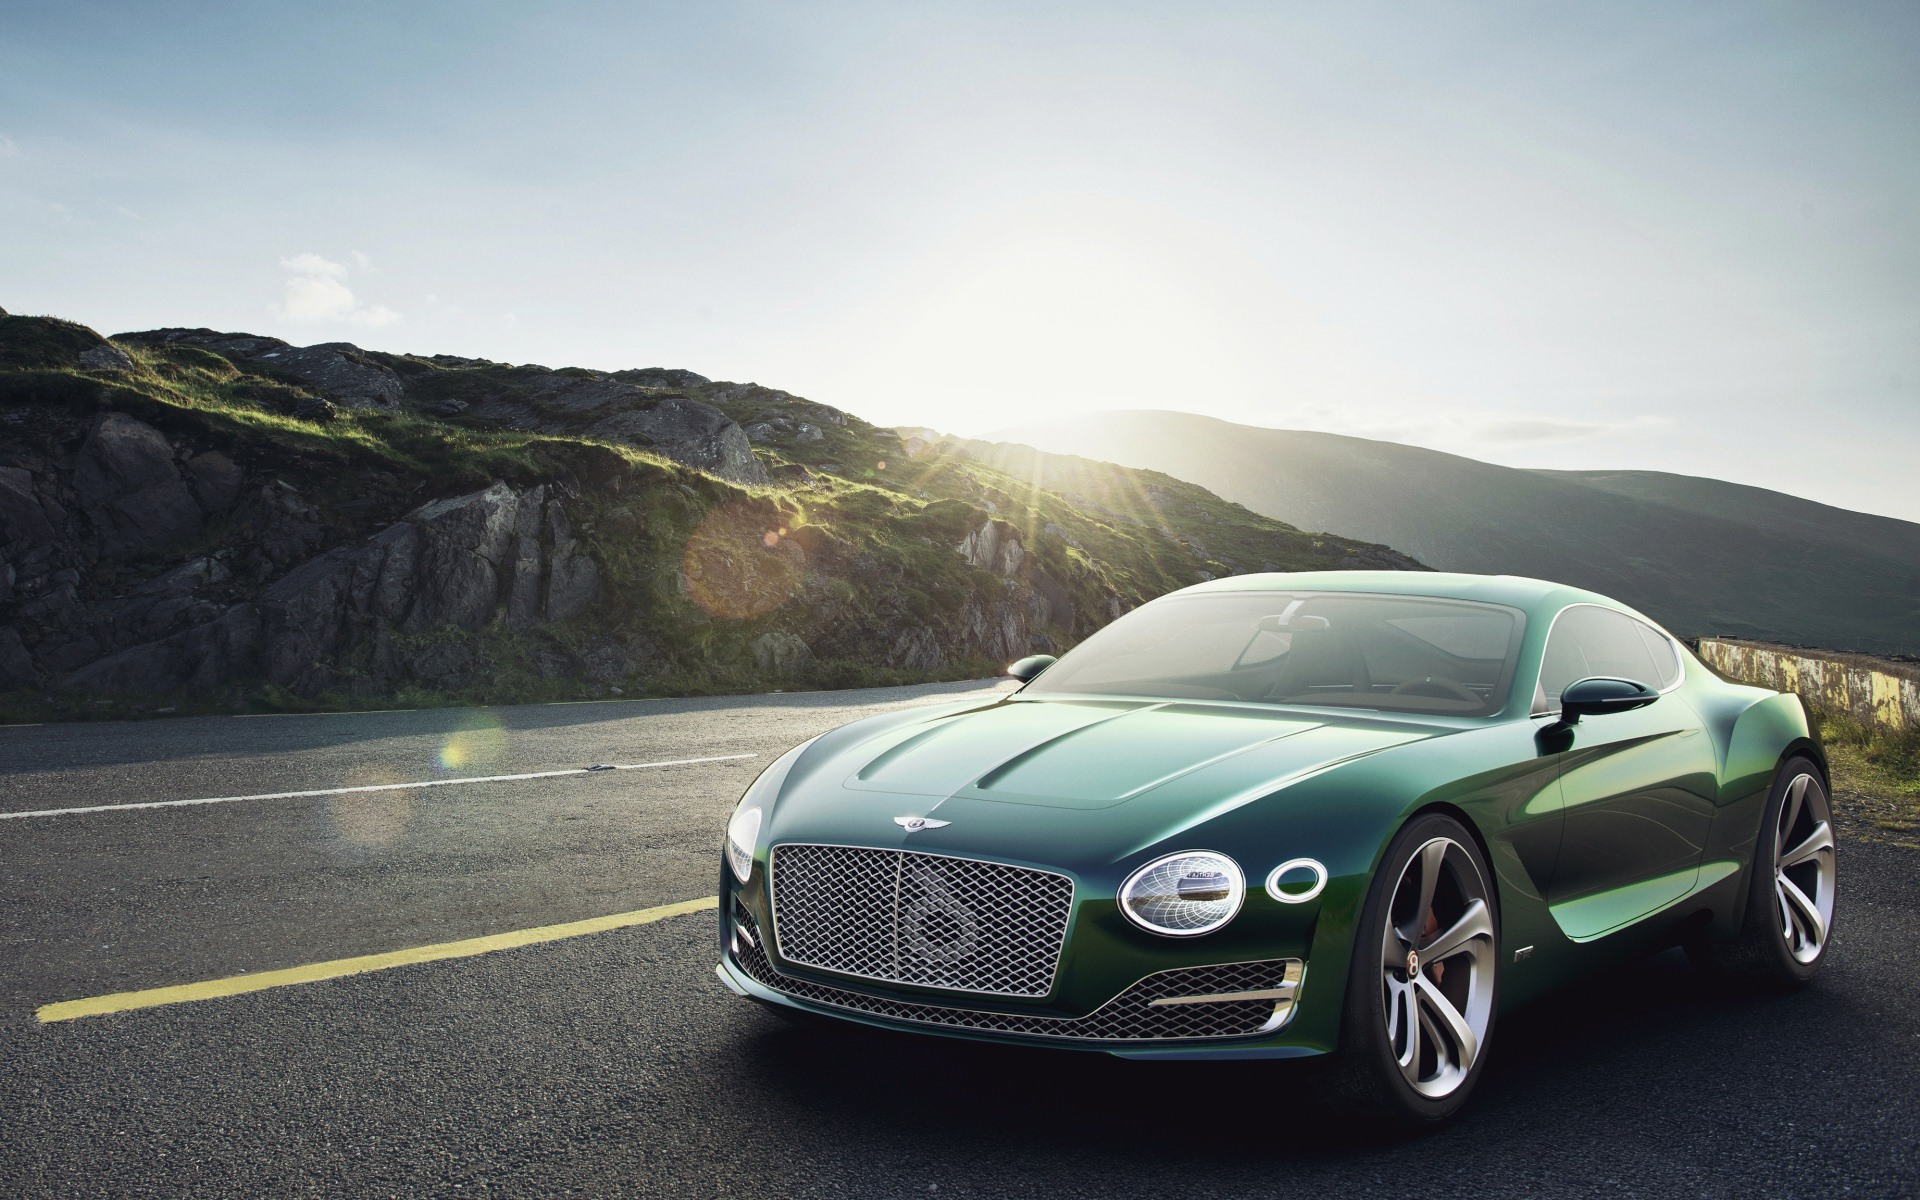 Green Bentley Car Background